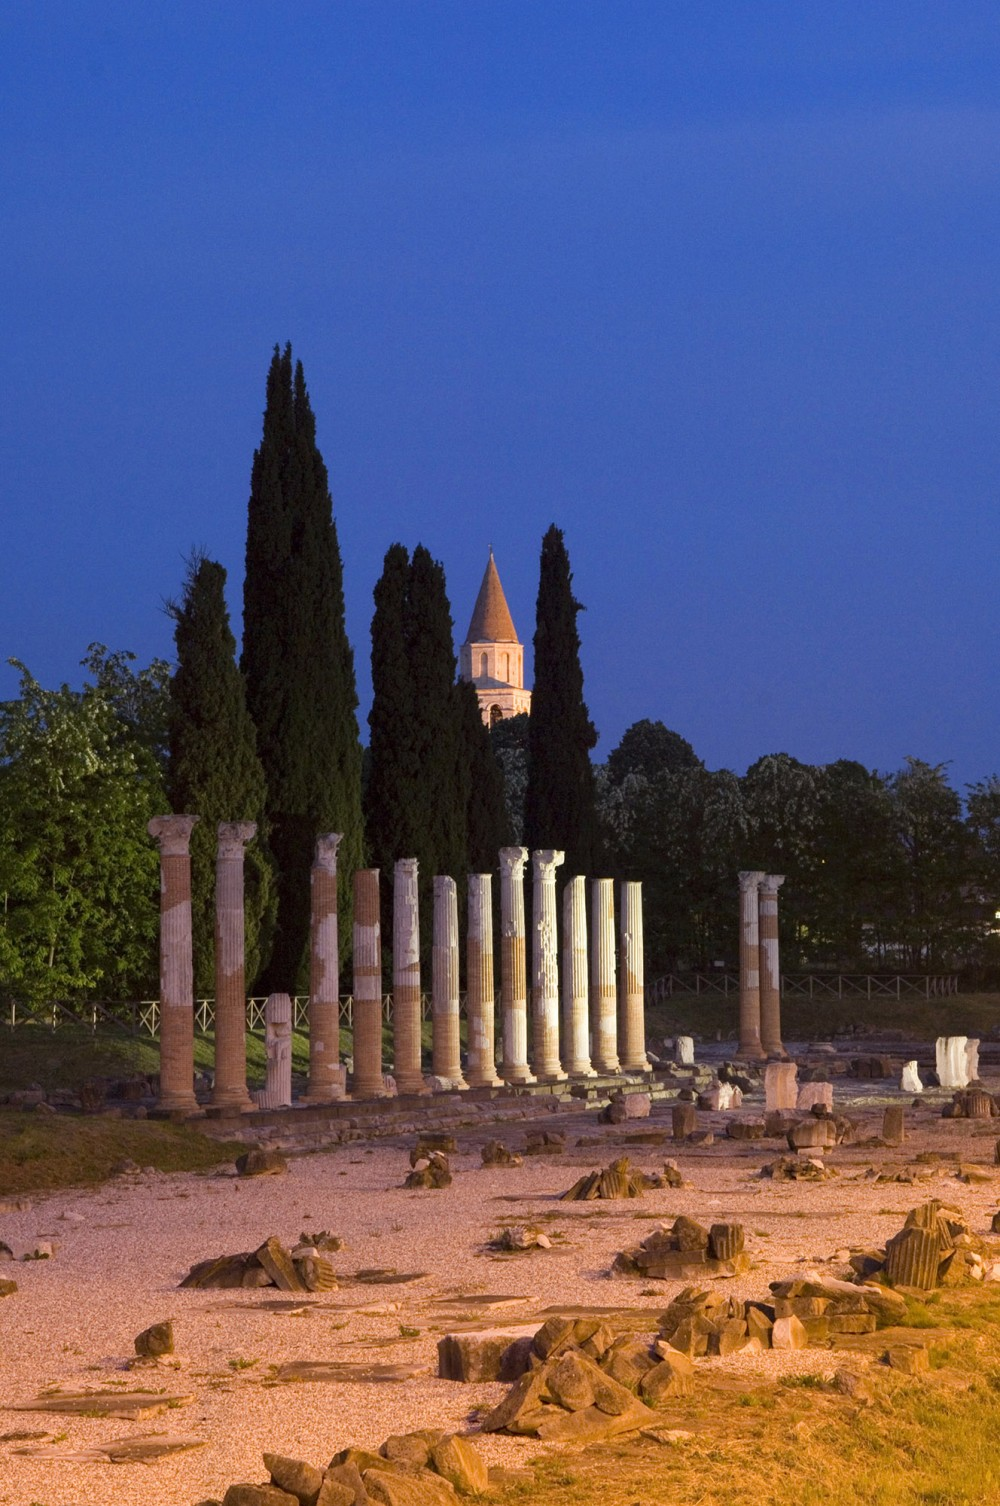 The forum of Aquileia today, with the campanile of the Early Christian basilica in the background. – © Gianluca Baronchelli